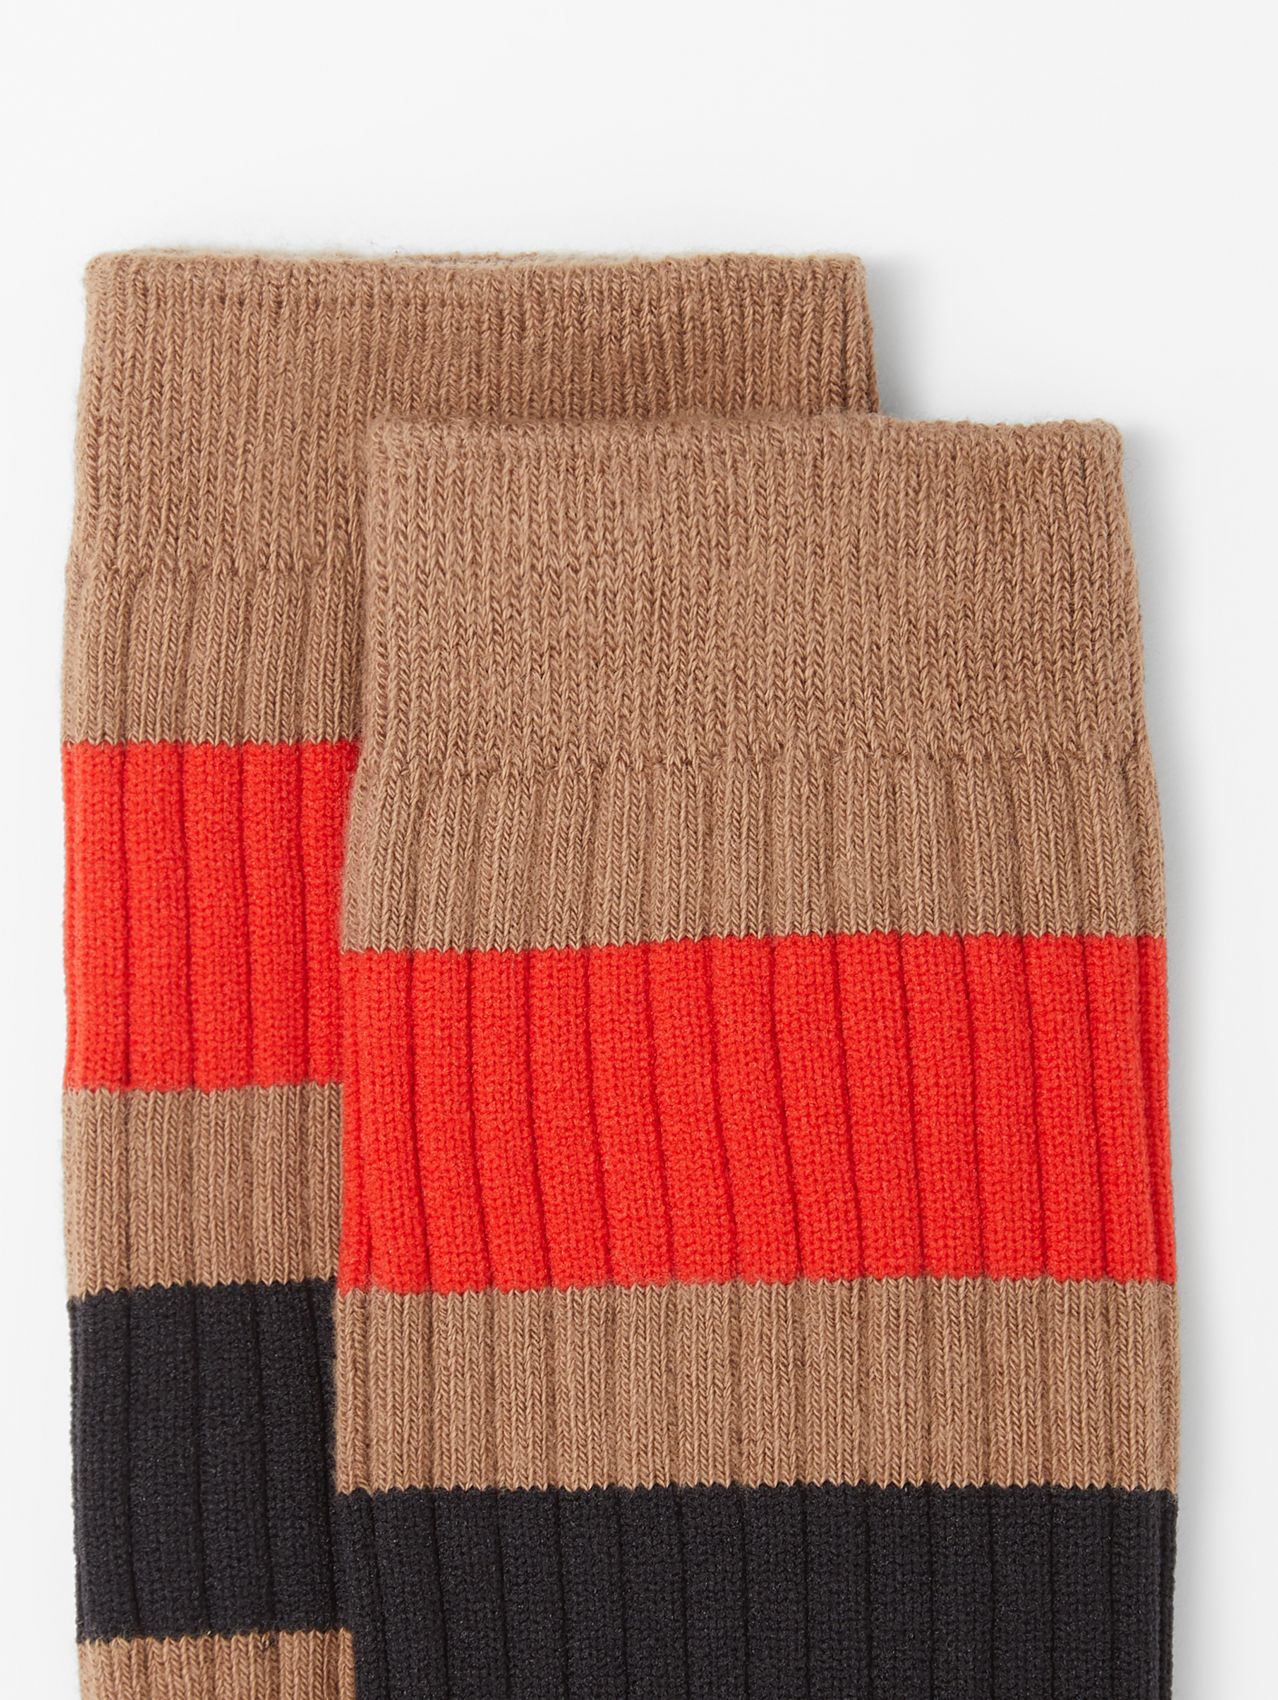 Striped Cotton Blend Socks in Warm Camel